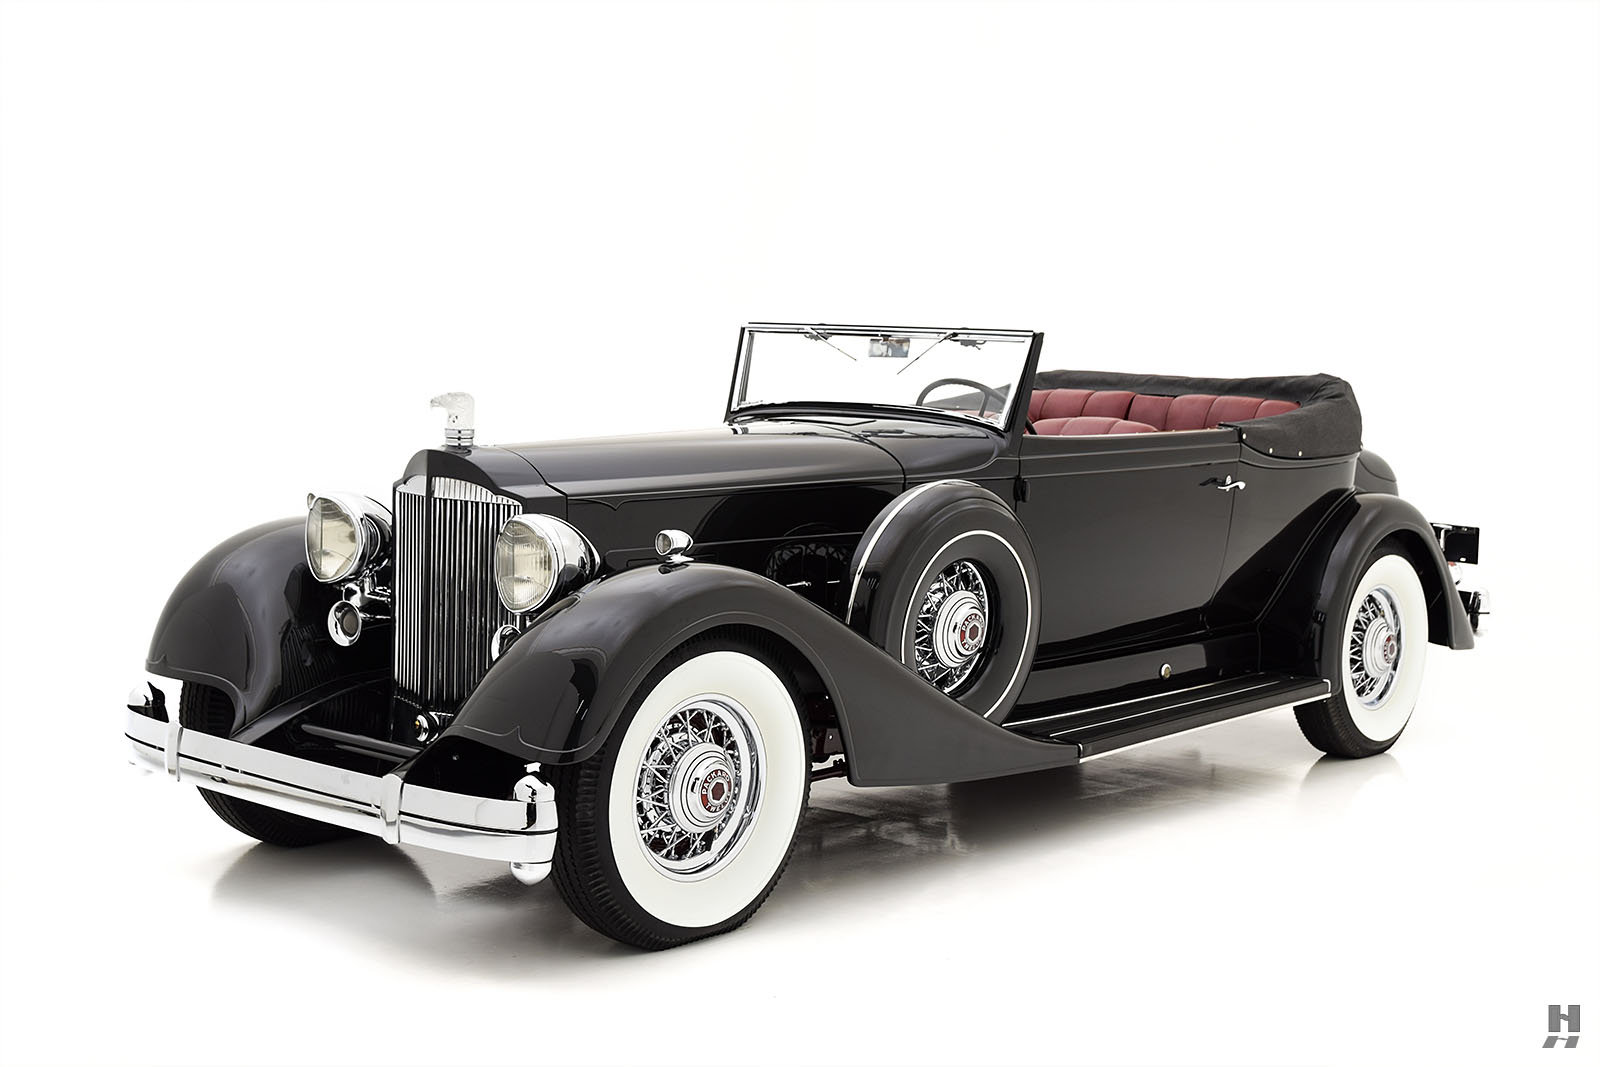 1934 PACKARD TWELVE VICTORIA CONVERTIBLE For Sale (picture 1 of 6)